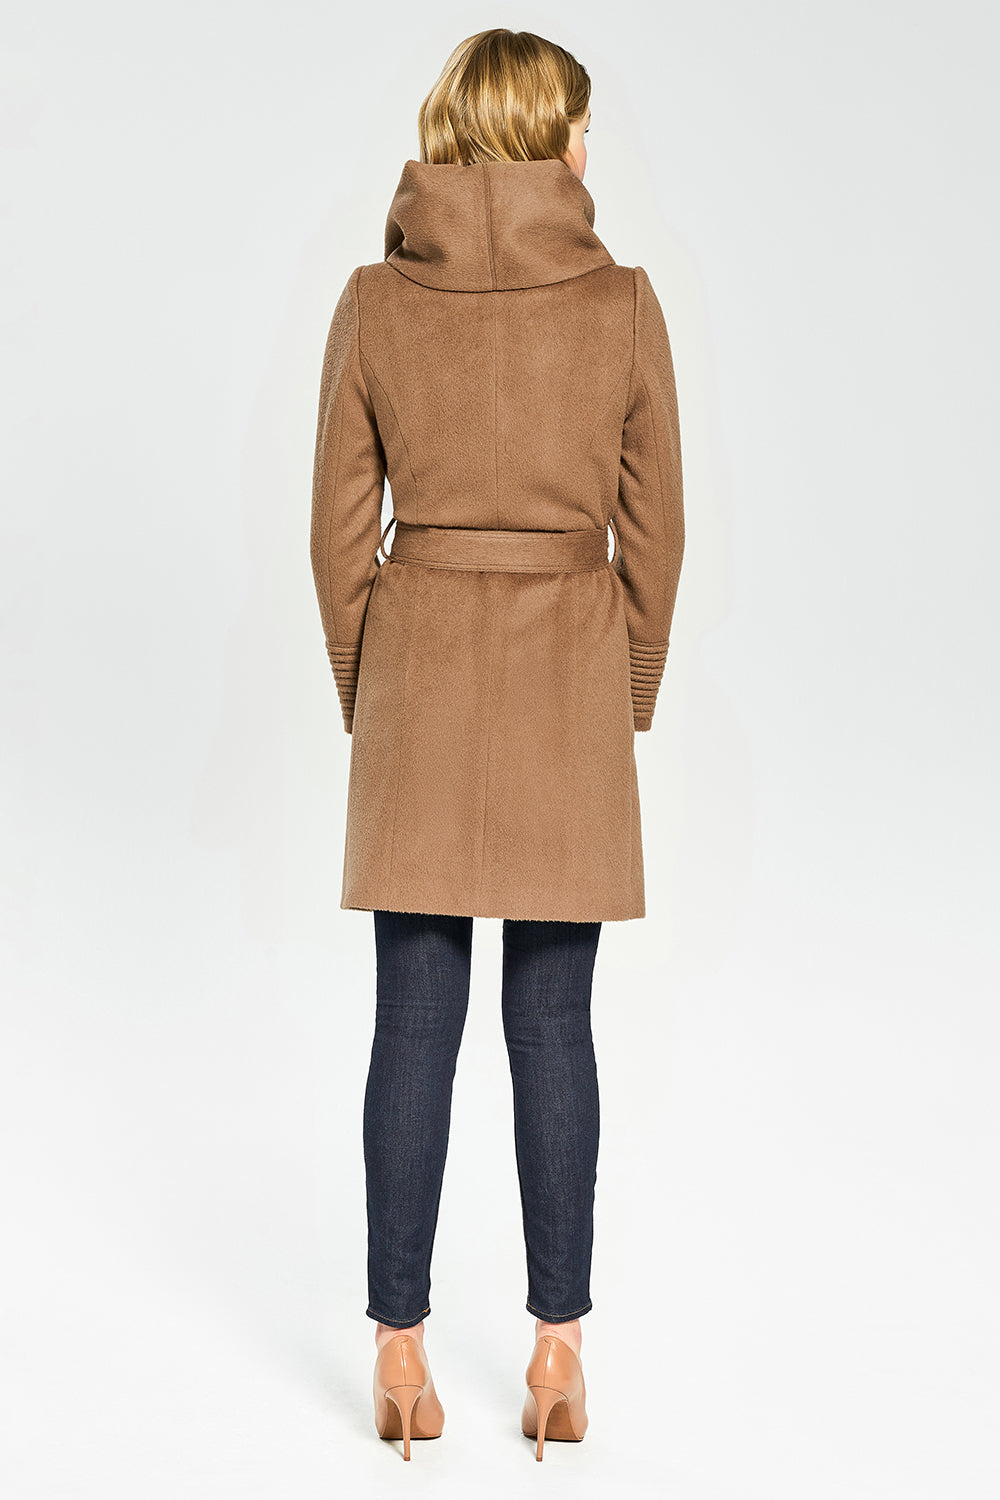 Sentaler Mid Length Hooded Wrap Coat featured in Baby Alpaca and available in Dark Camel. Seen from back.